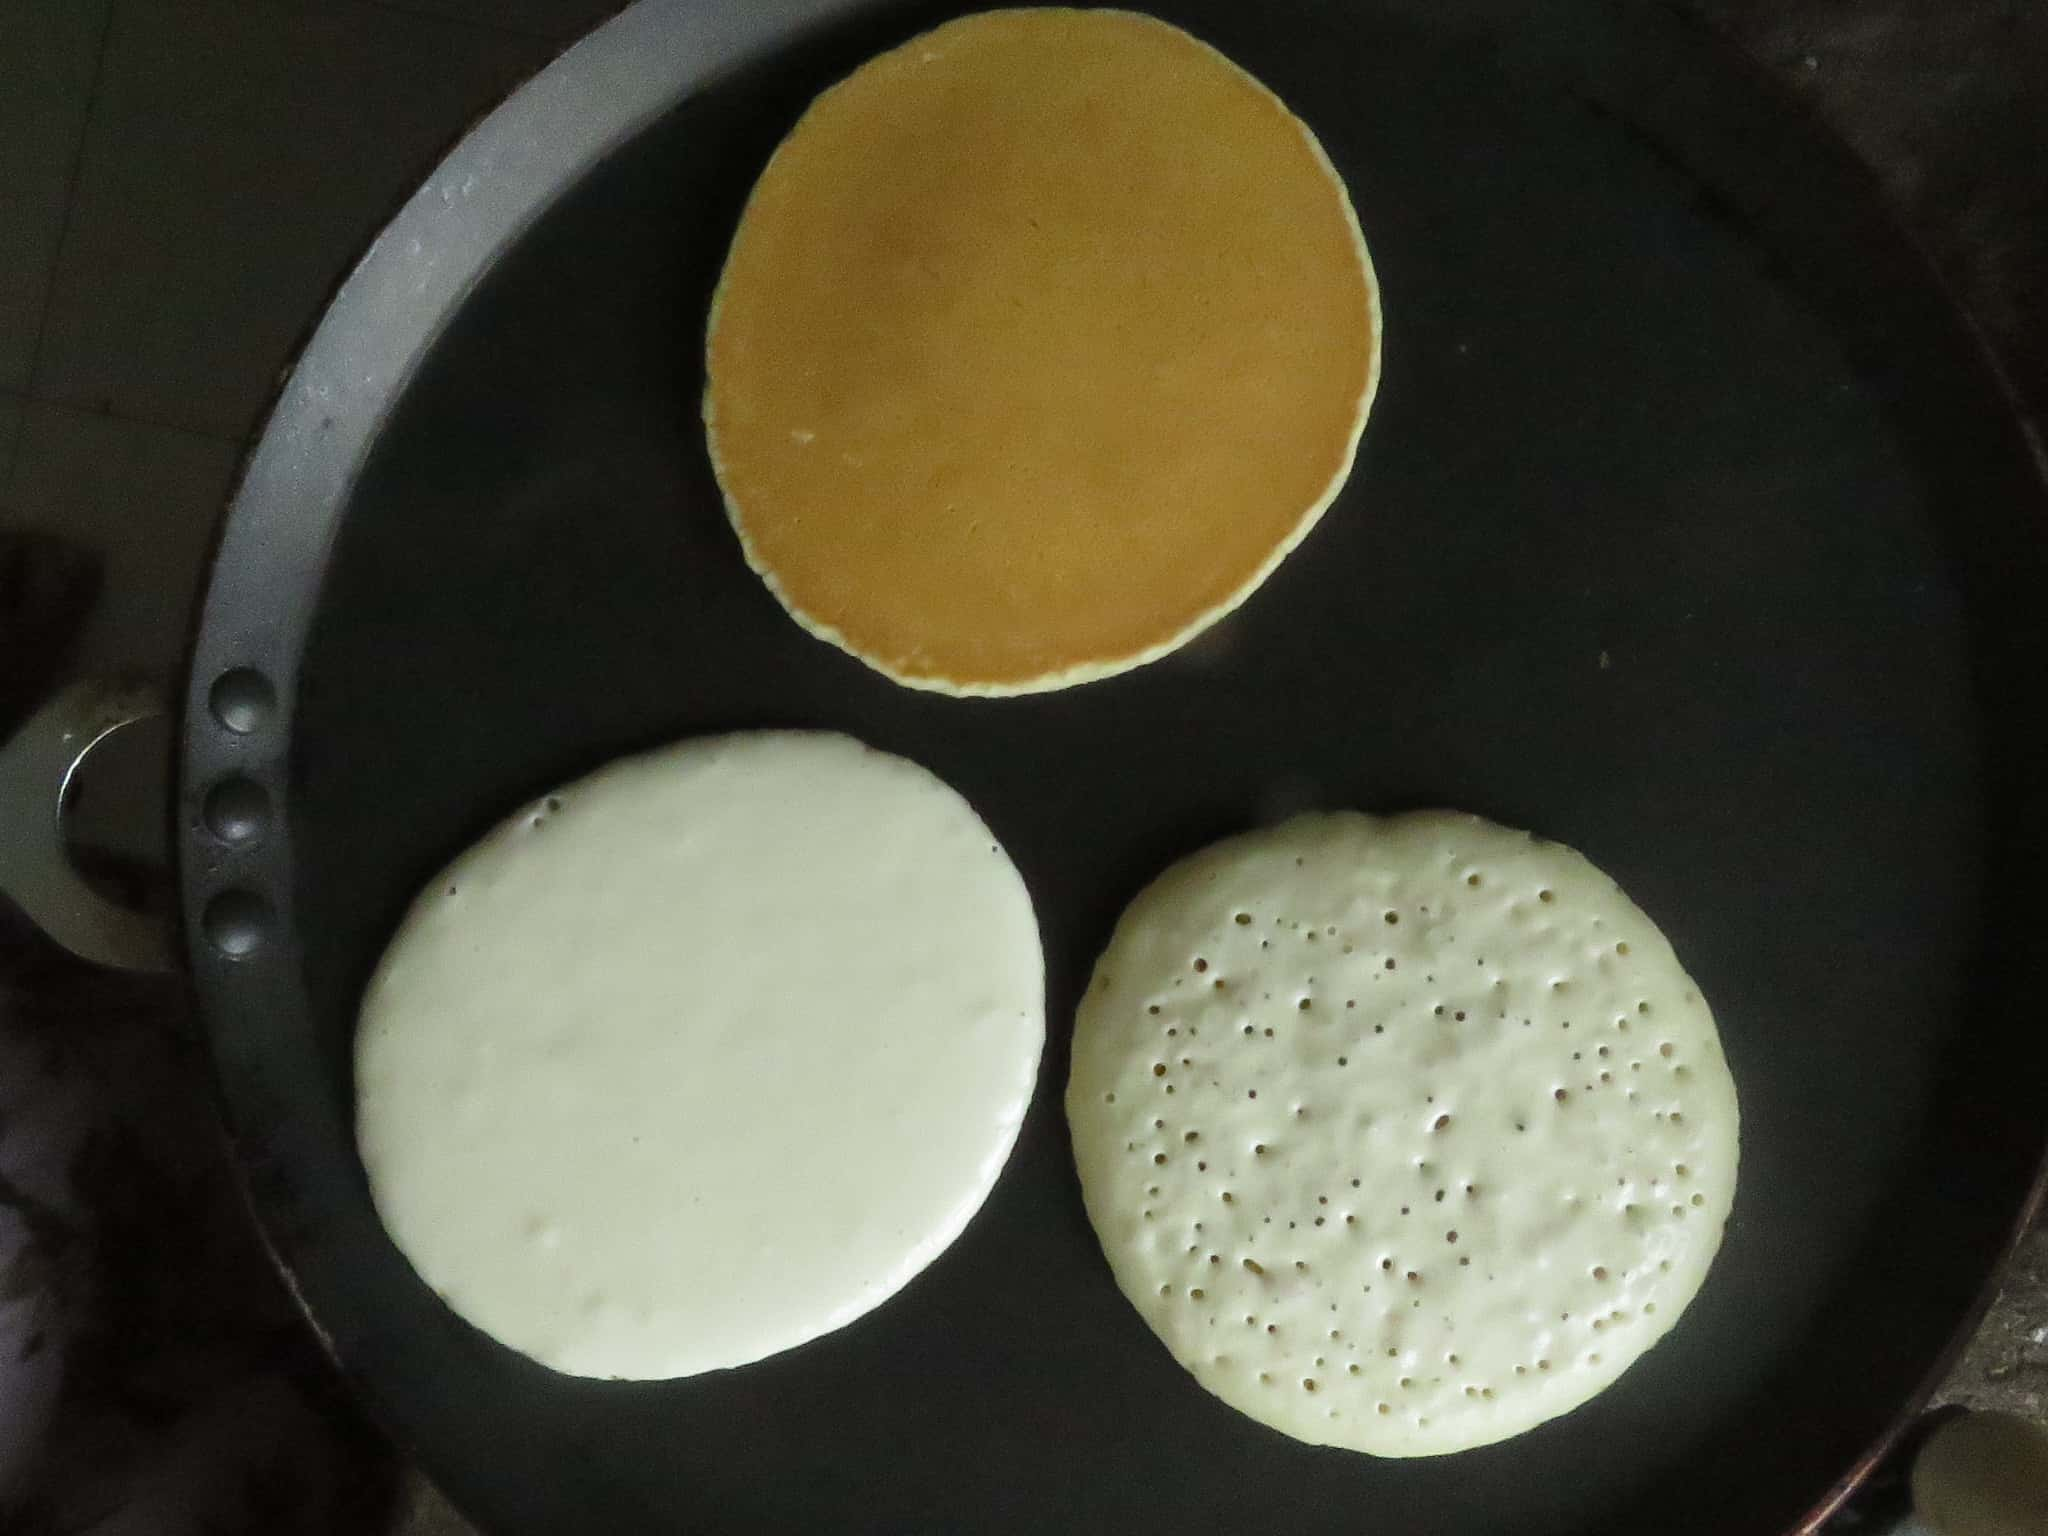 image shows how to cook three pancakes at the same time, the pancakes are in different stages of cooking.